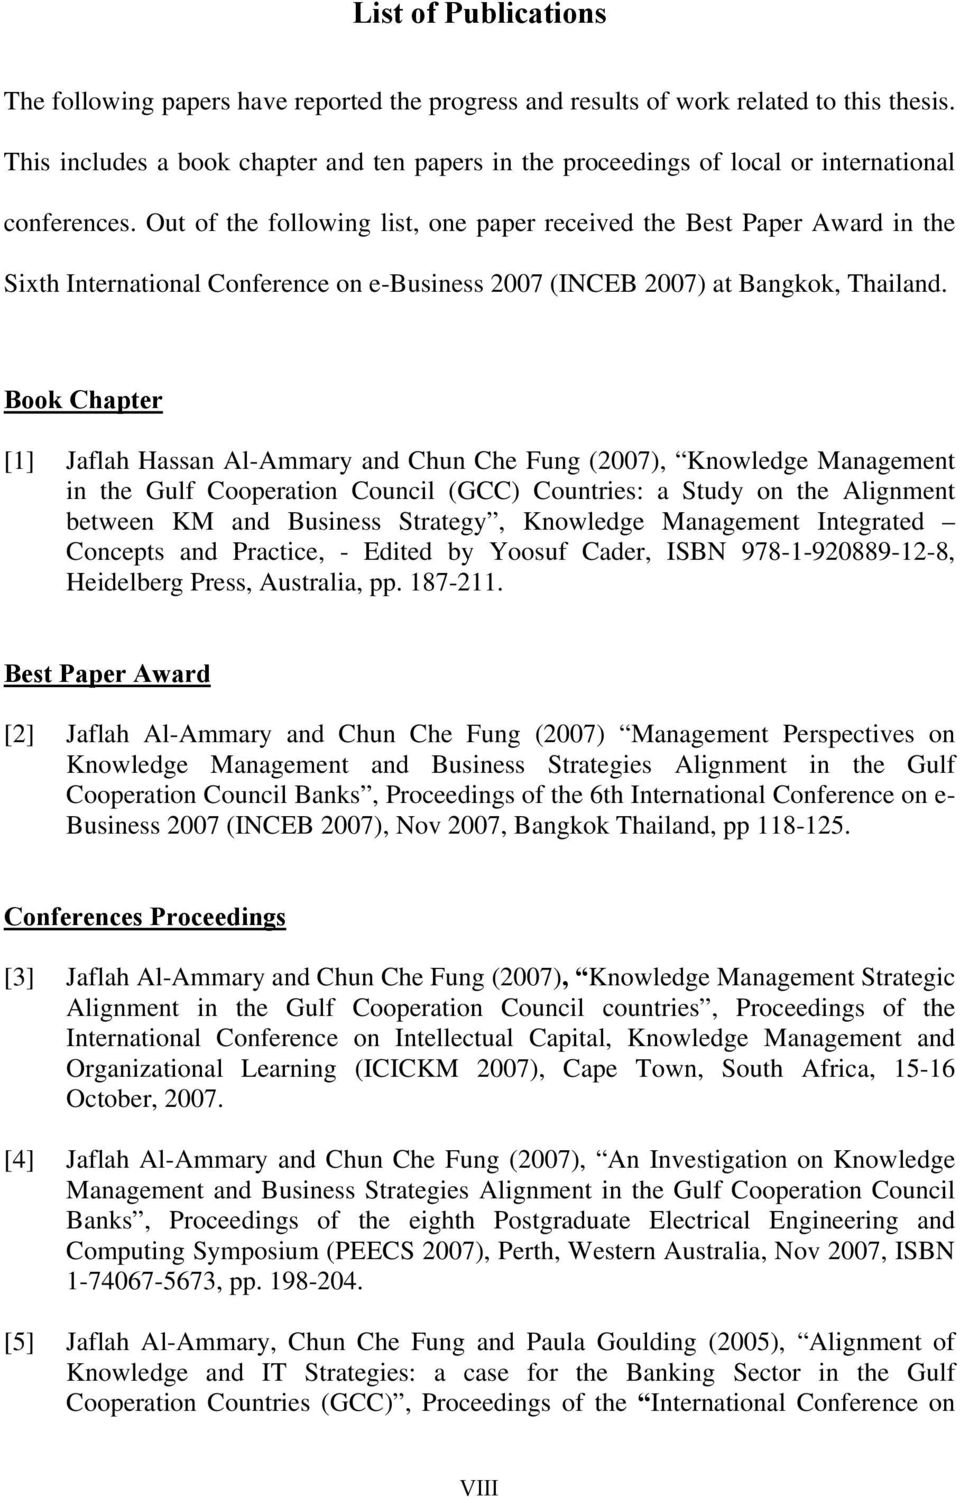 Out of the following list, one paper received the Best Paper Award in the Sixth International Conference on e-business 2007 (INCEB 2007) at Bangkok, Thailand.